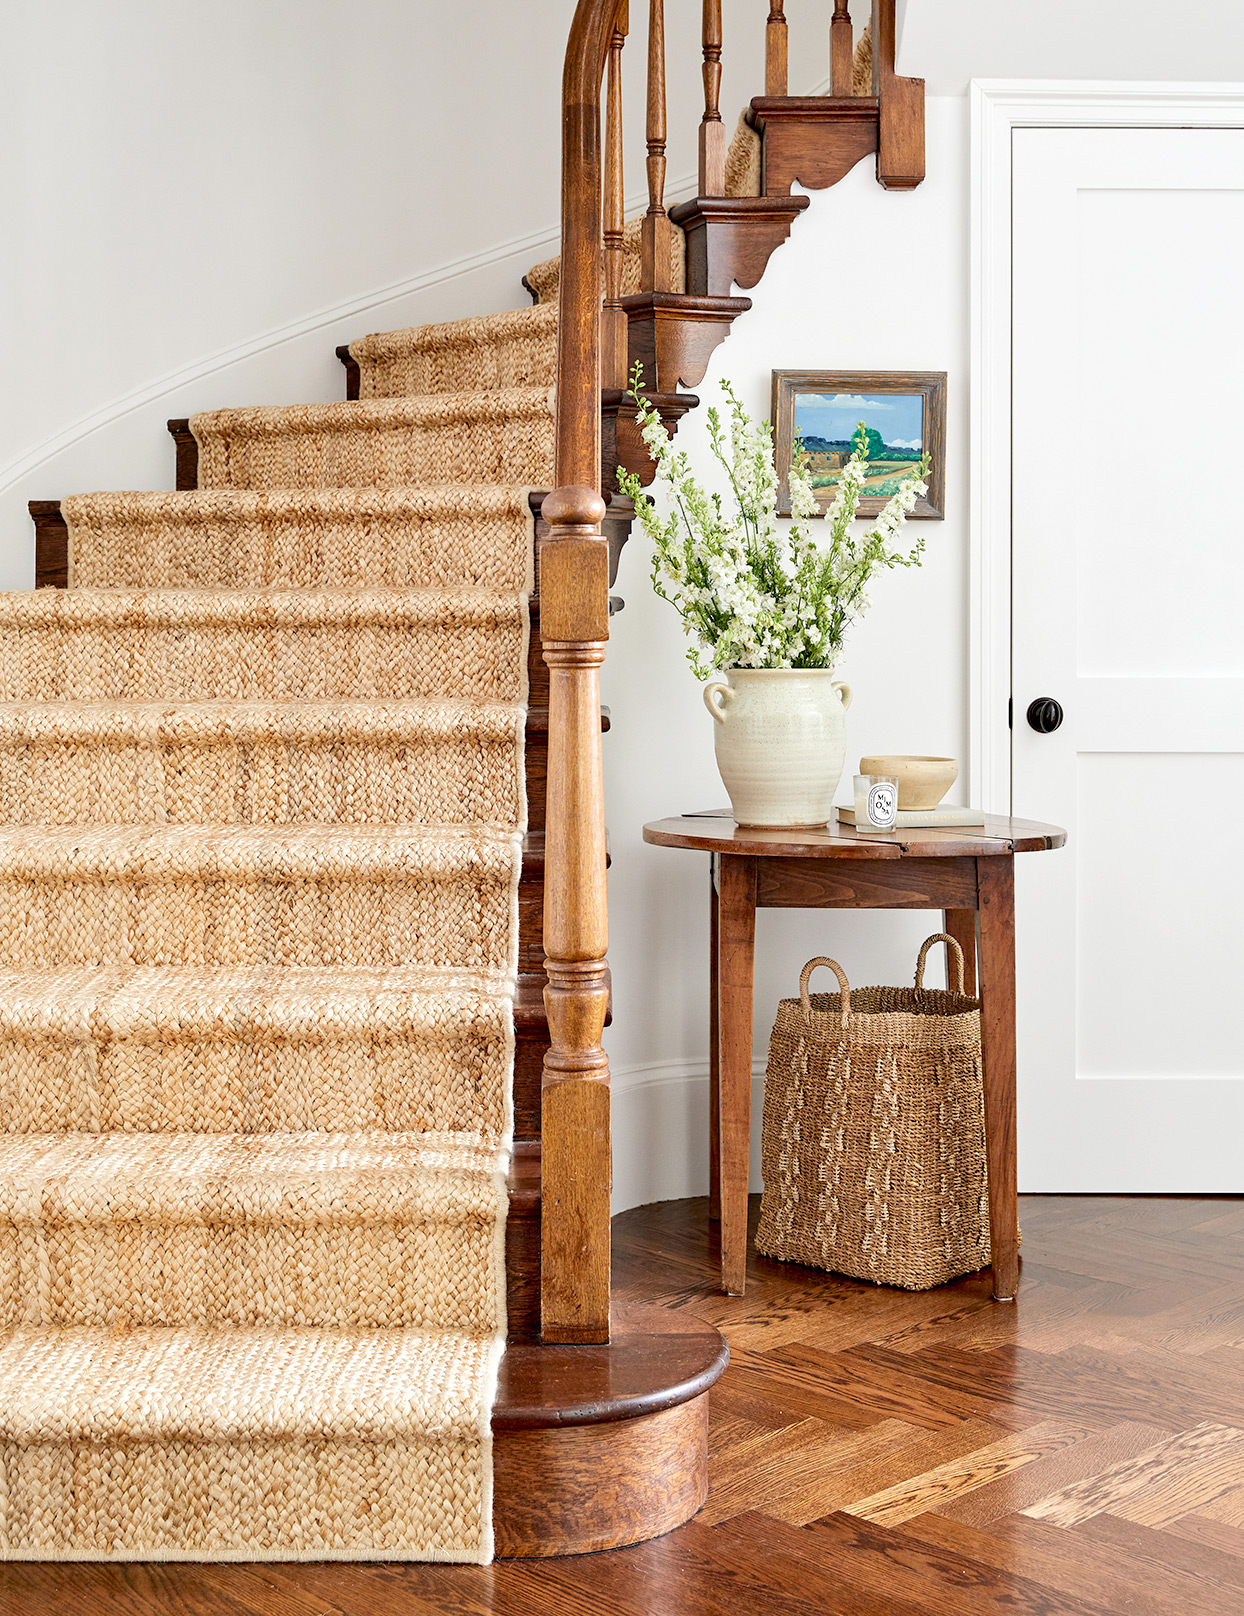 Stairs with stitched runner and table